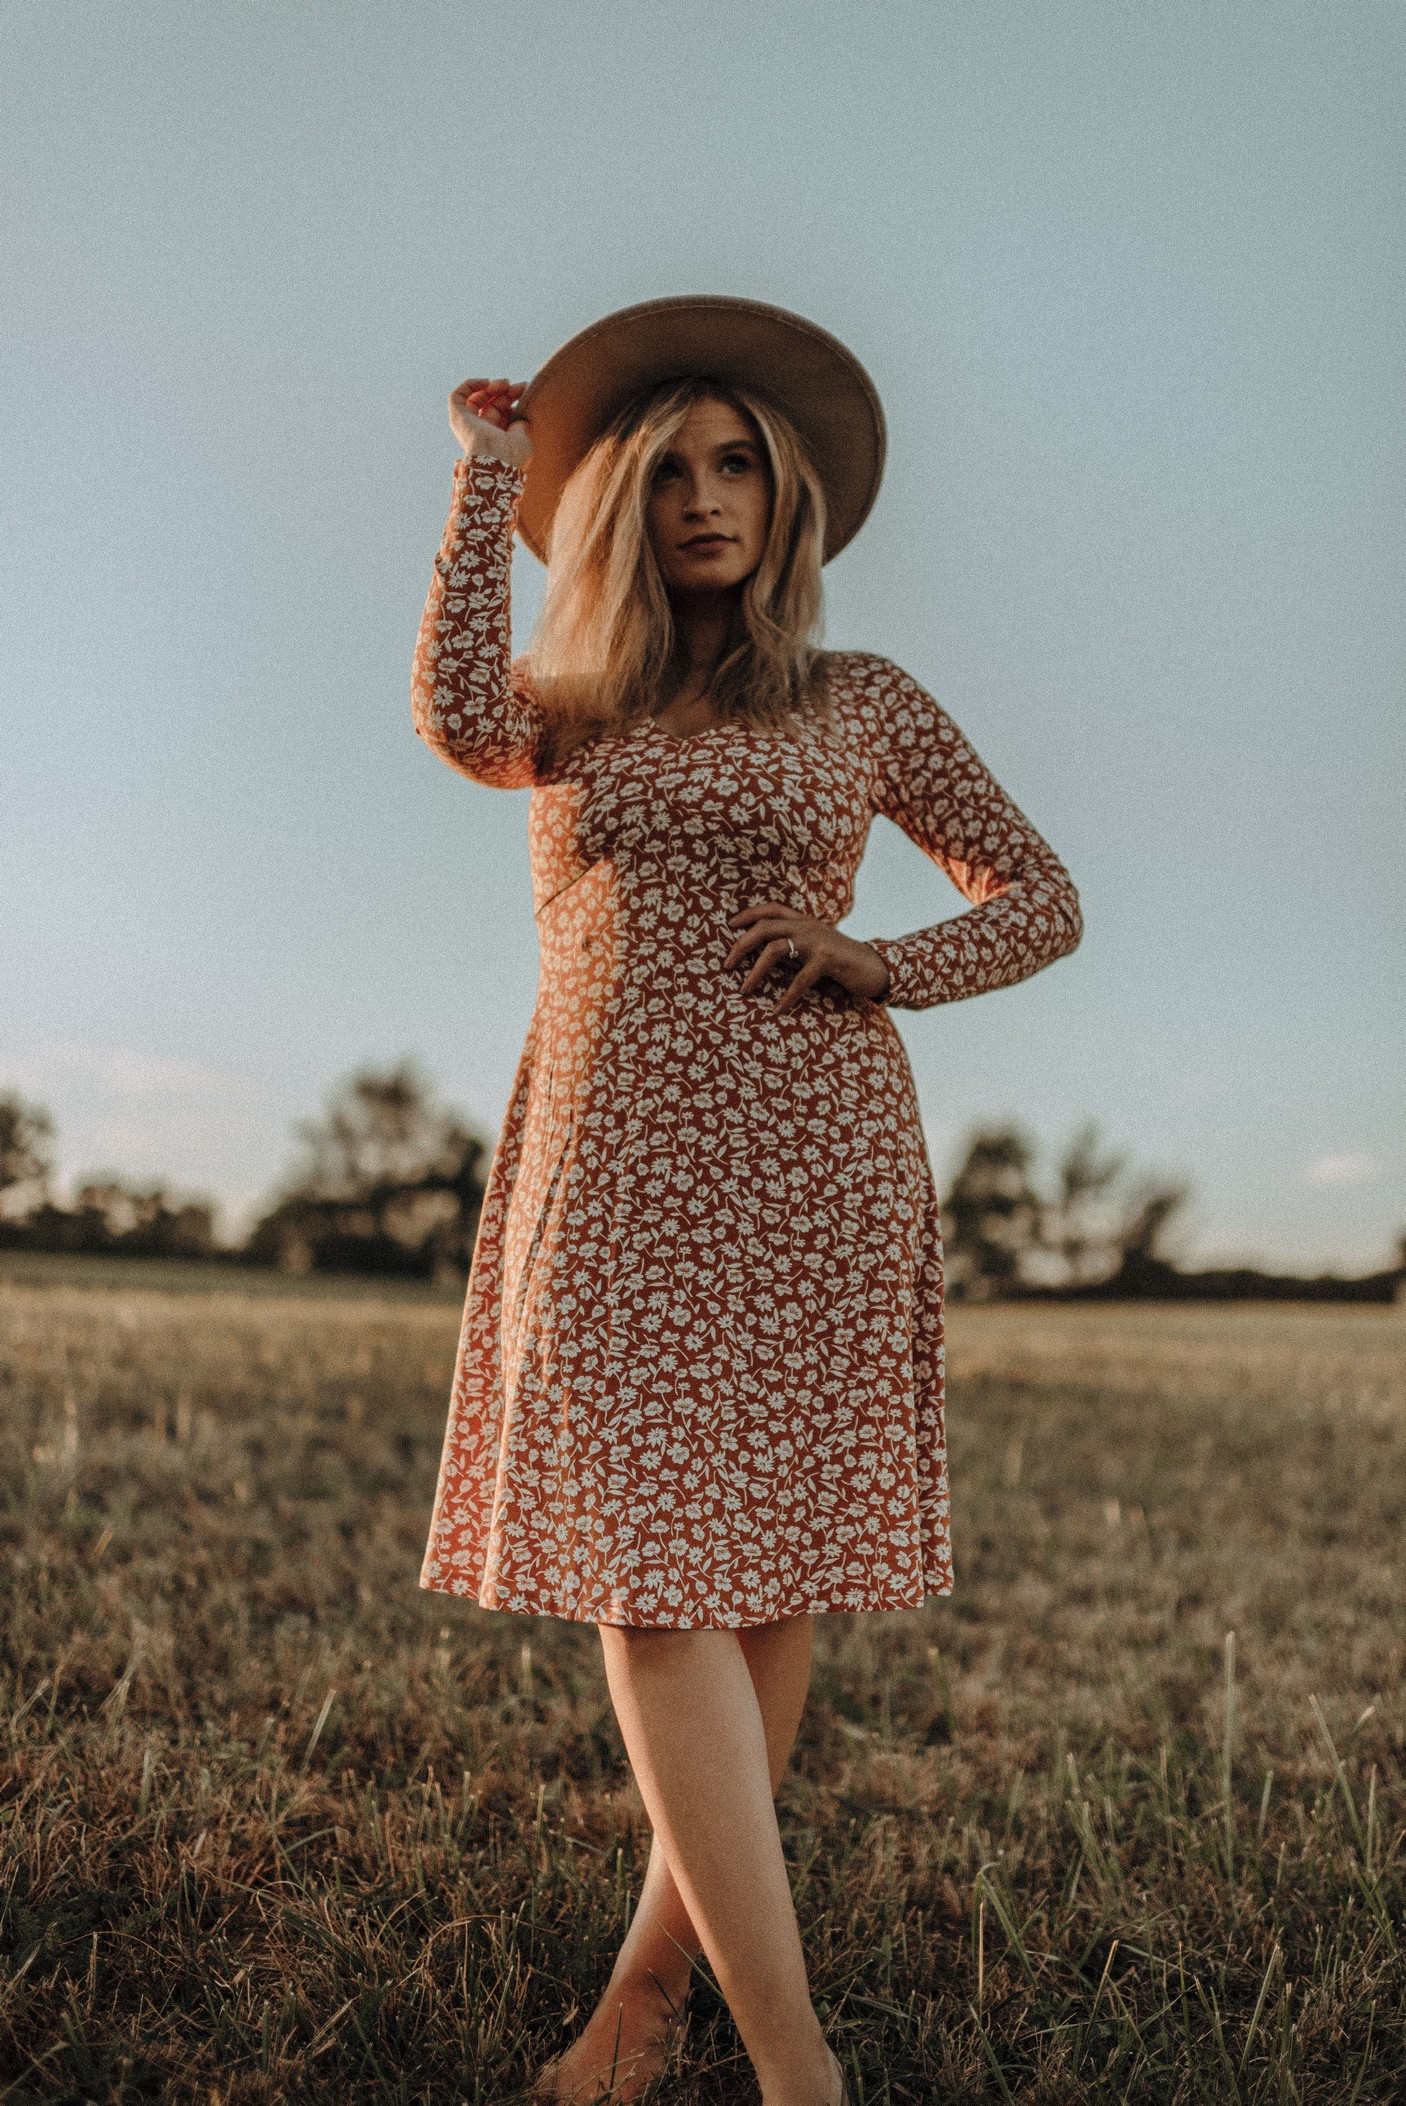 a woman standing in a field, during a heatwave, wearing a long dress and hat.